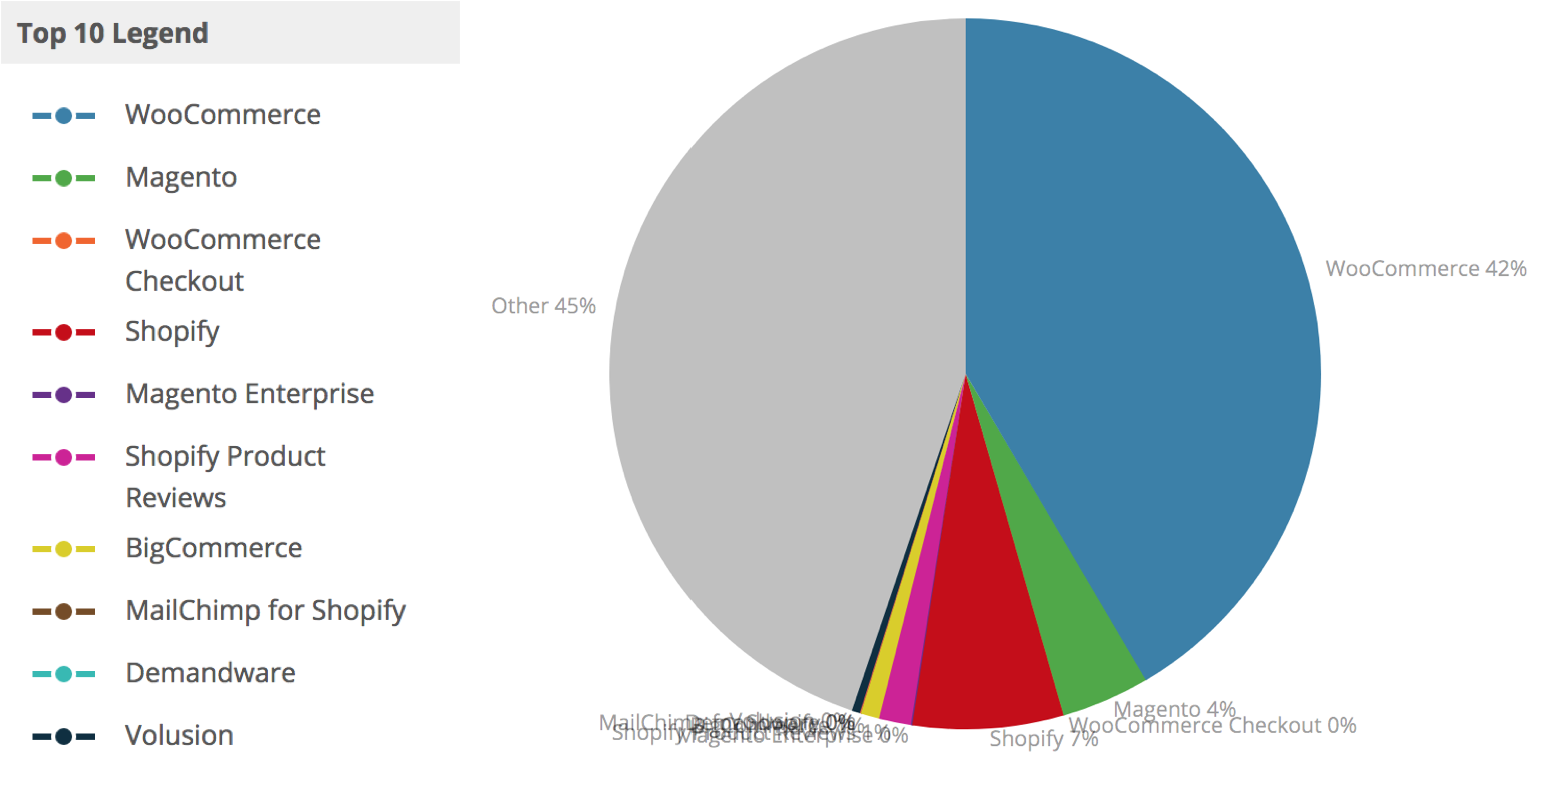 Pie chart showing the most commonly used eCommerce platforms